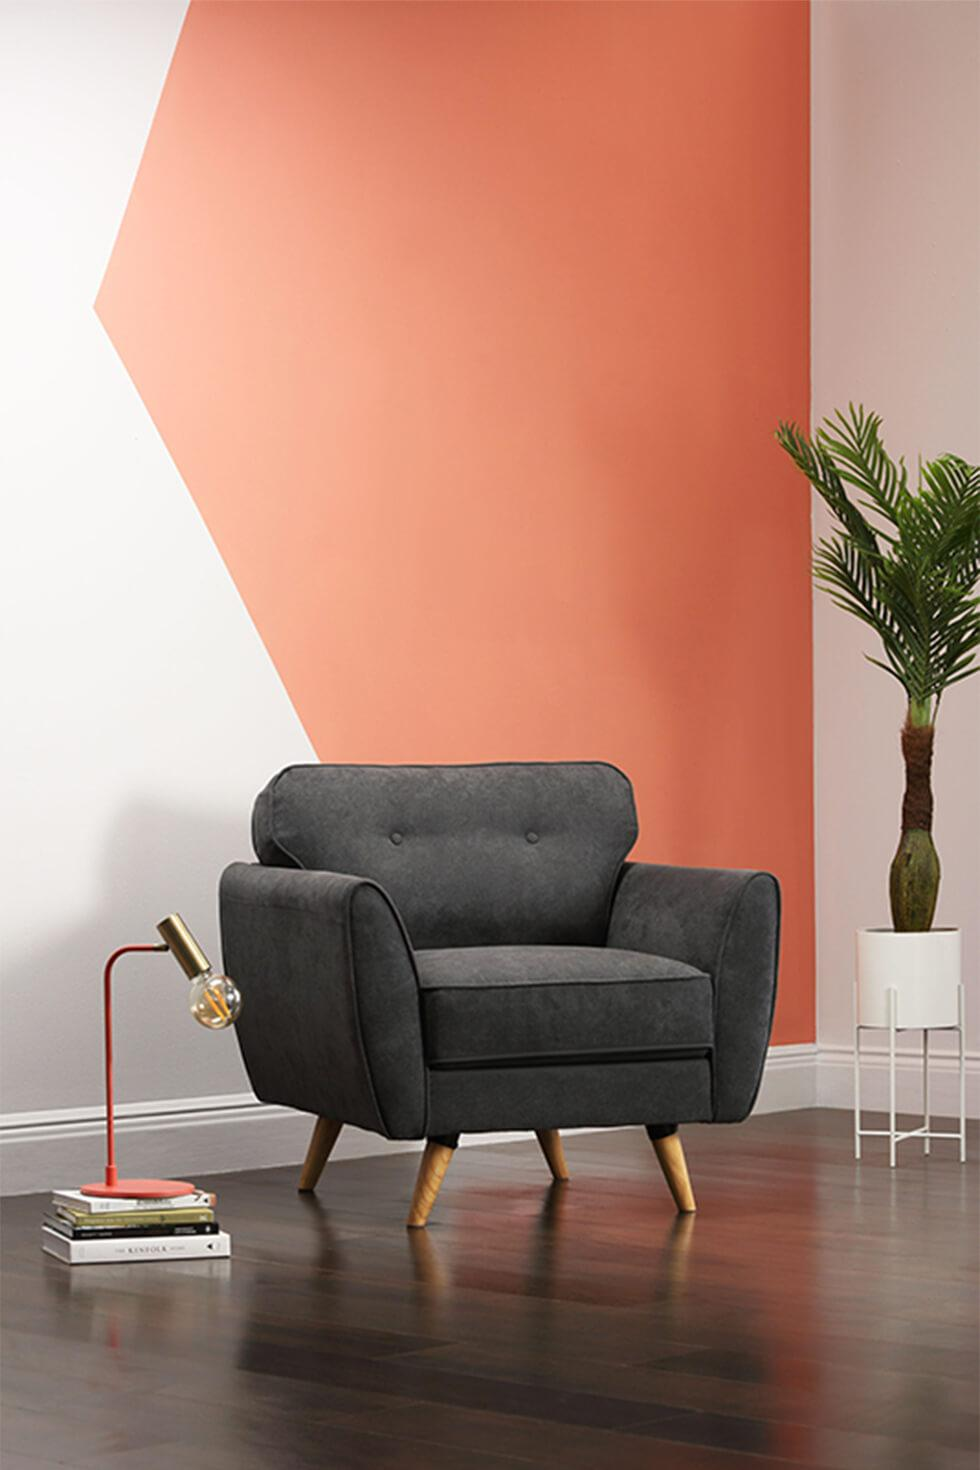 Coral colour blocked wall with grey armchair